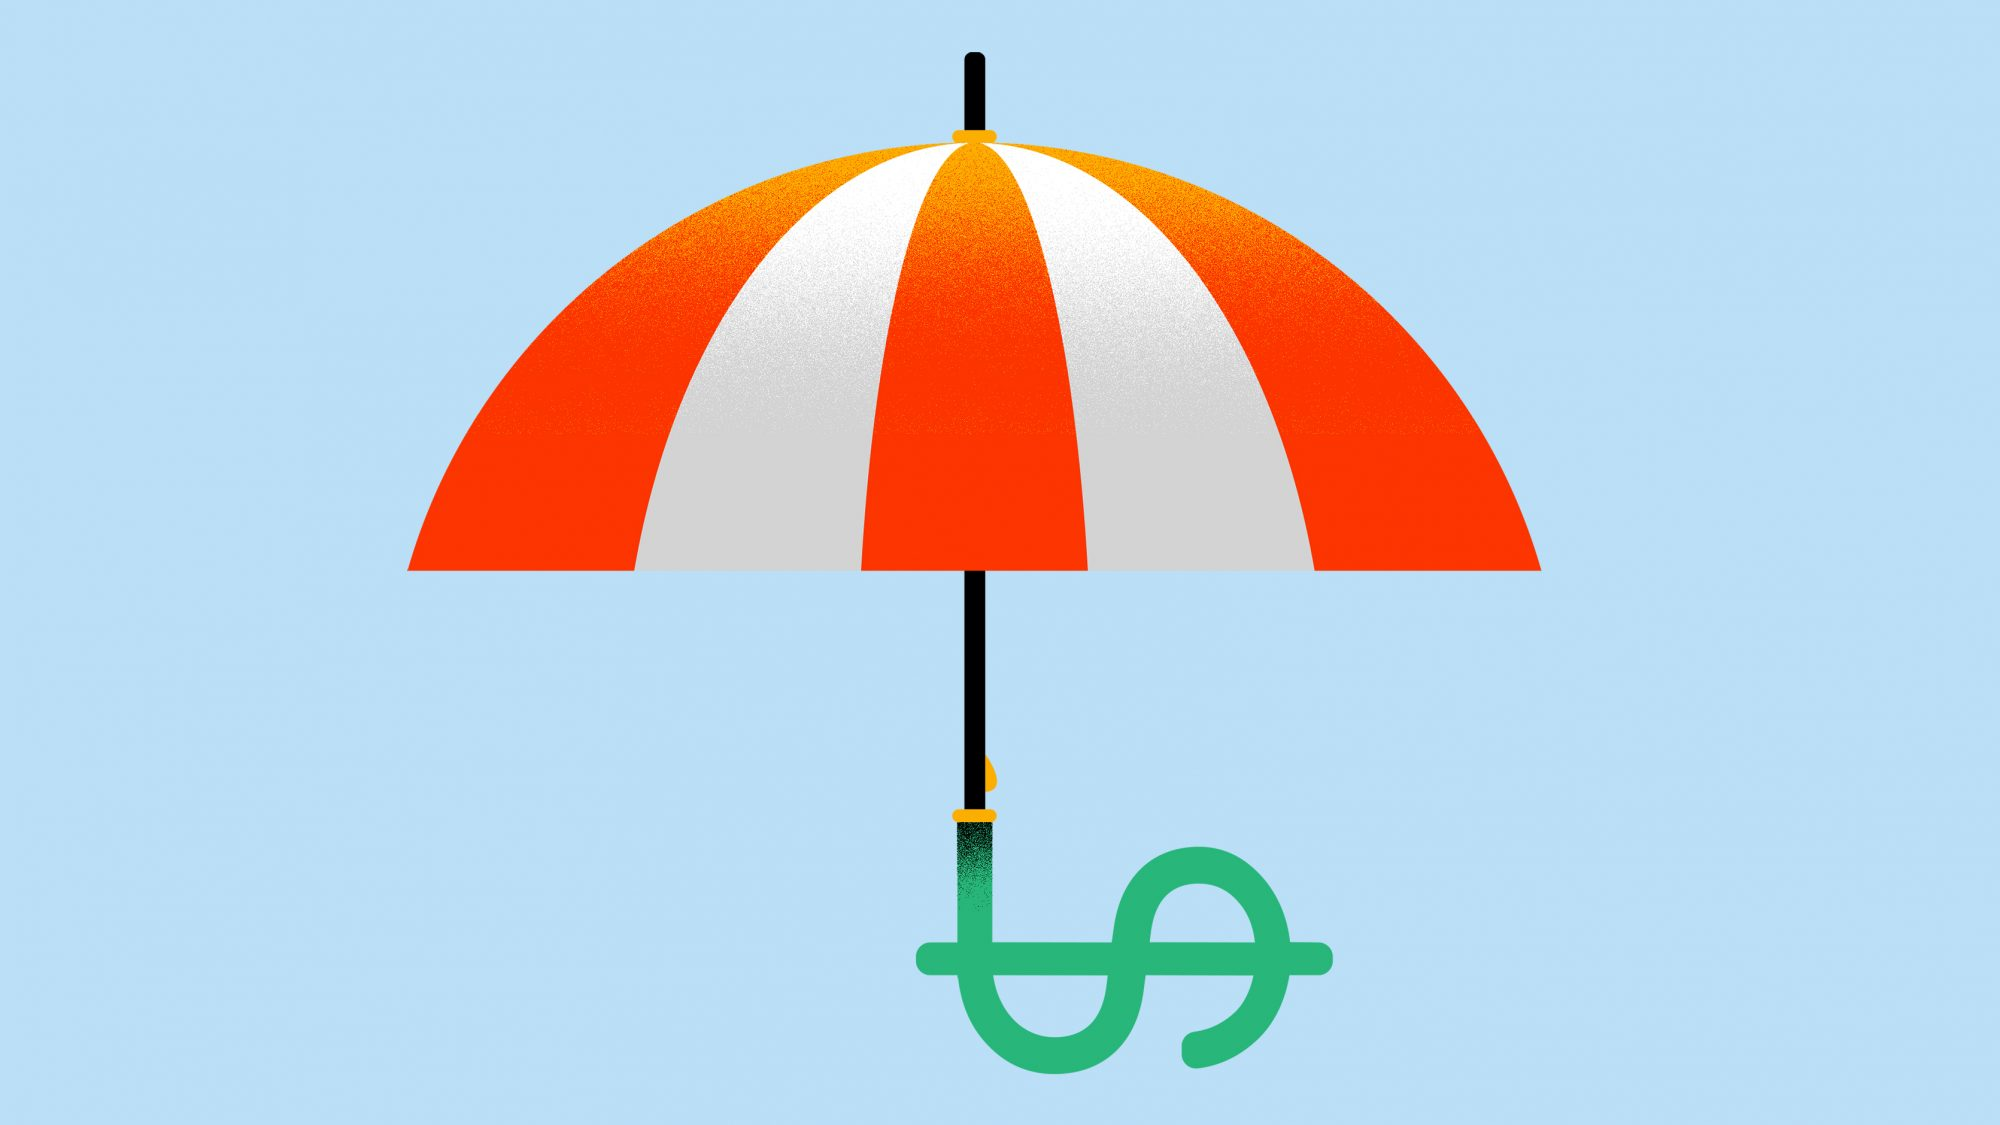 Best insurance apps 2020 - Real Simple smart money awards umbrella